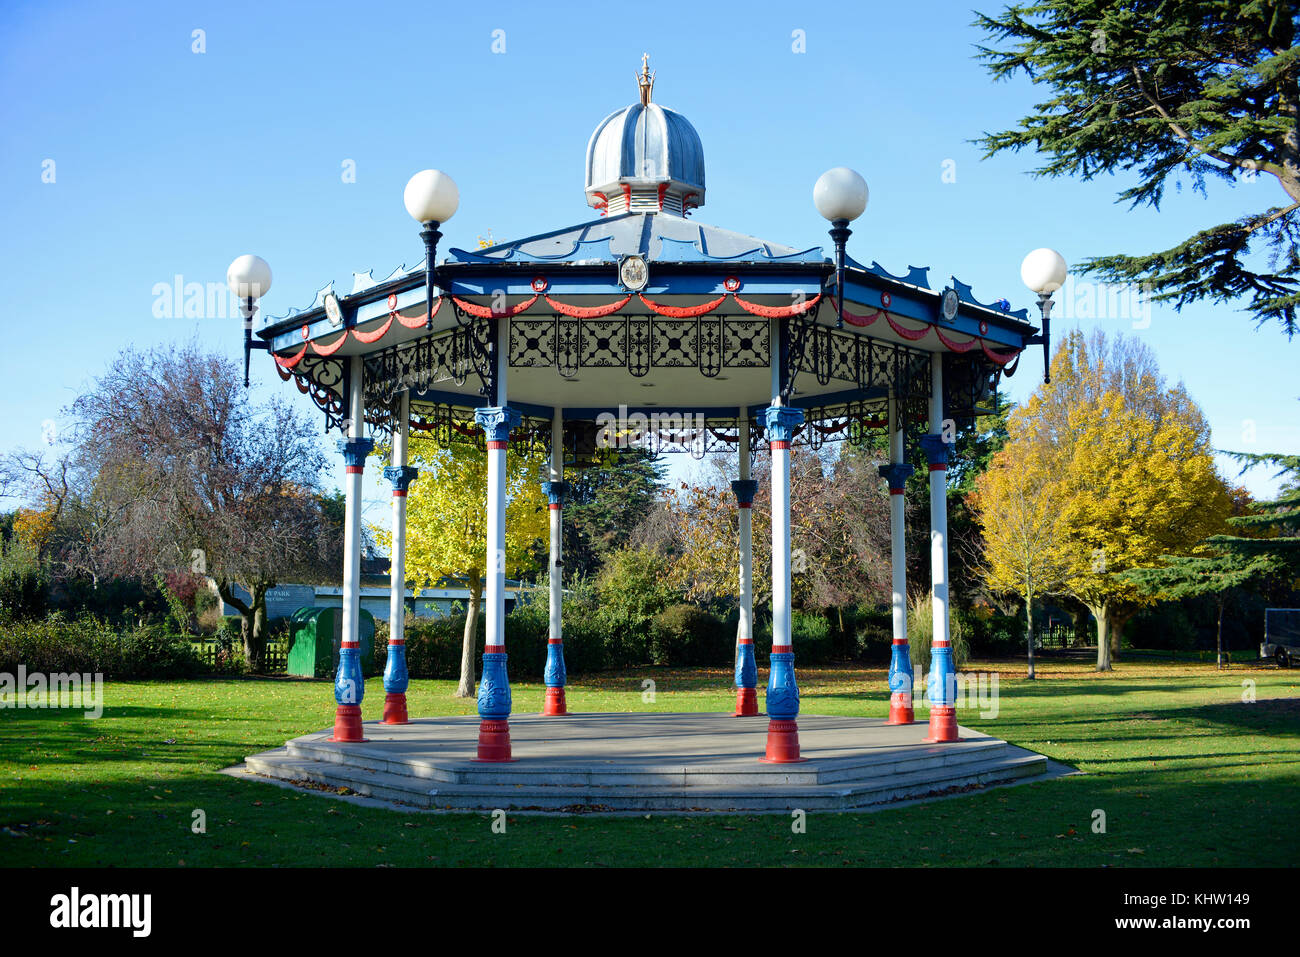 Bandstand in Priory Park Prittlewell Southend on Sea, Essex. Space for copy Stock Photo